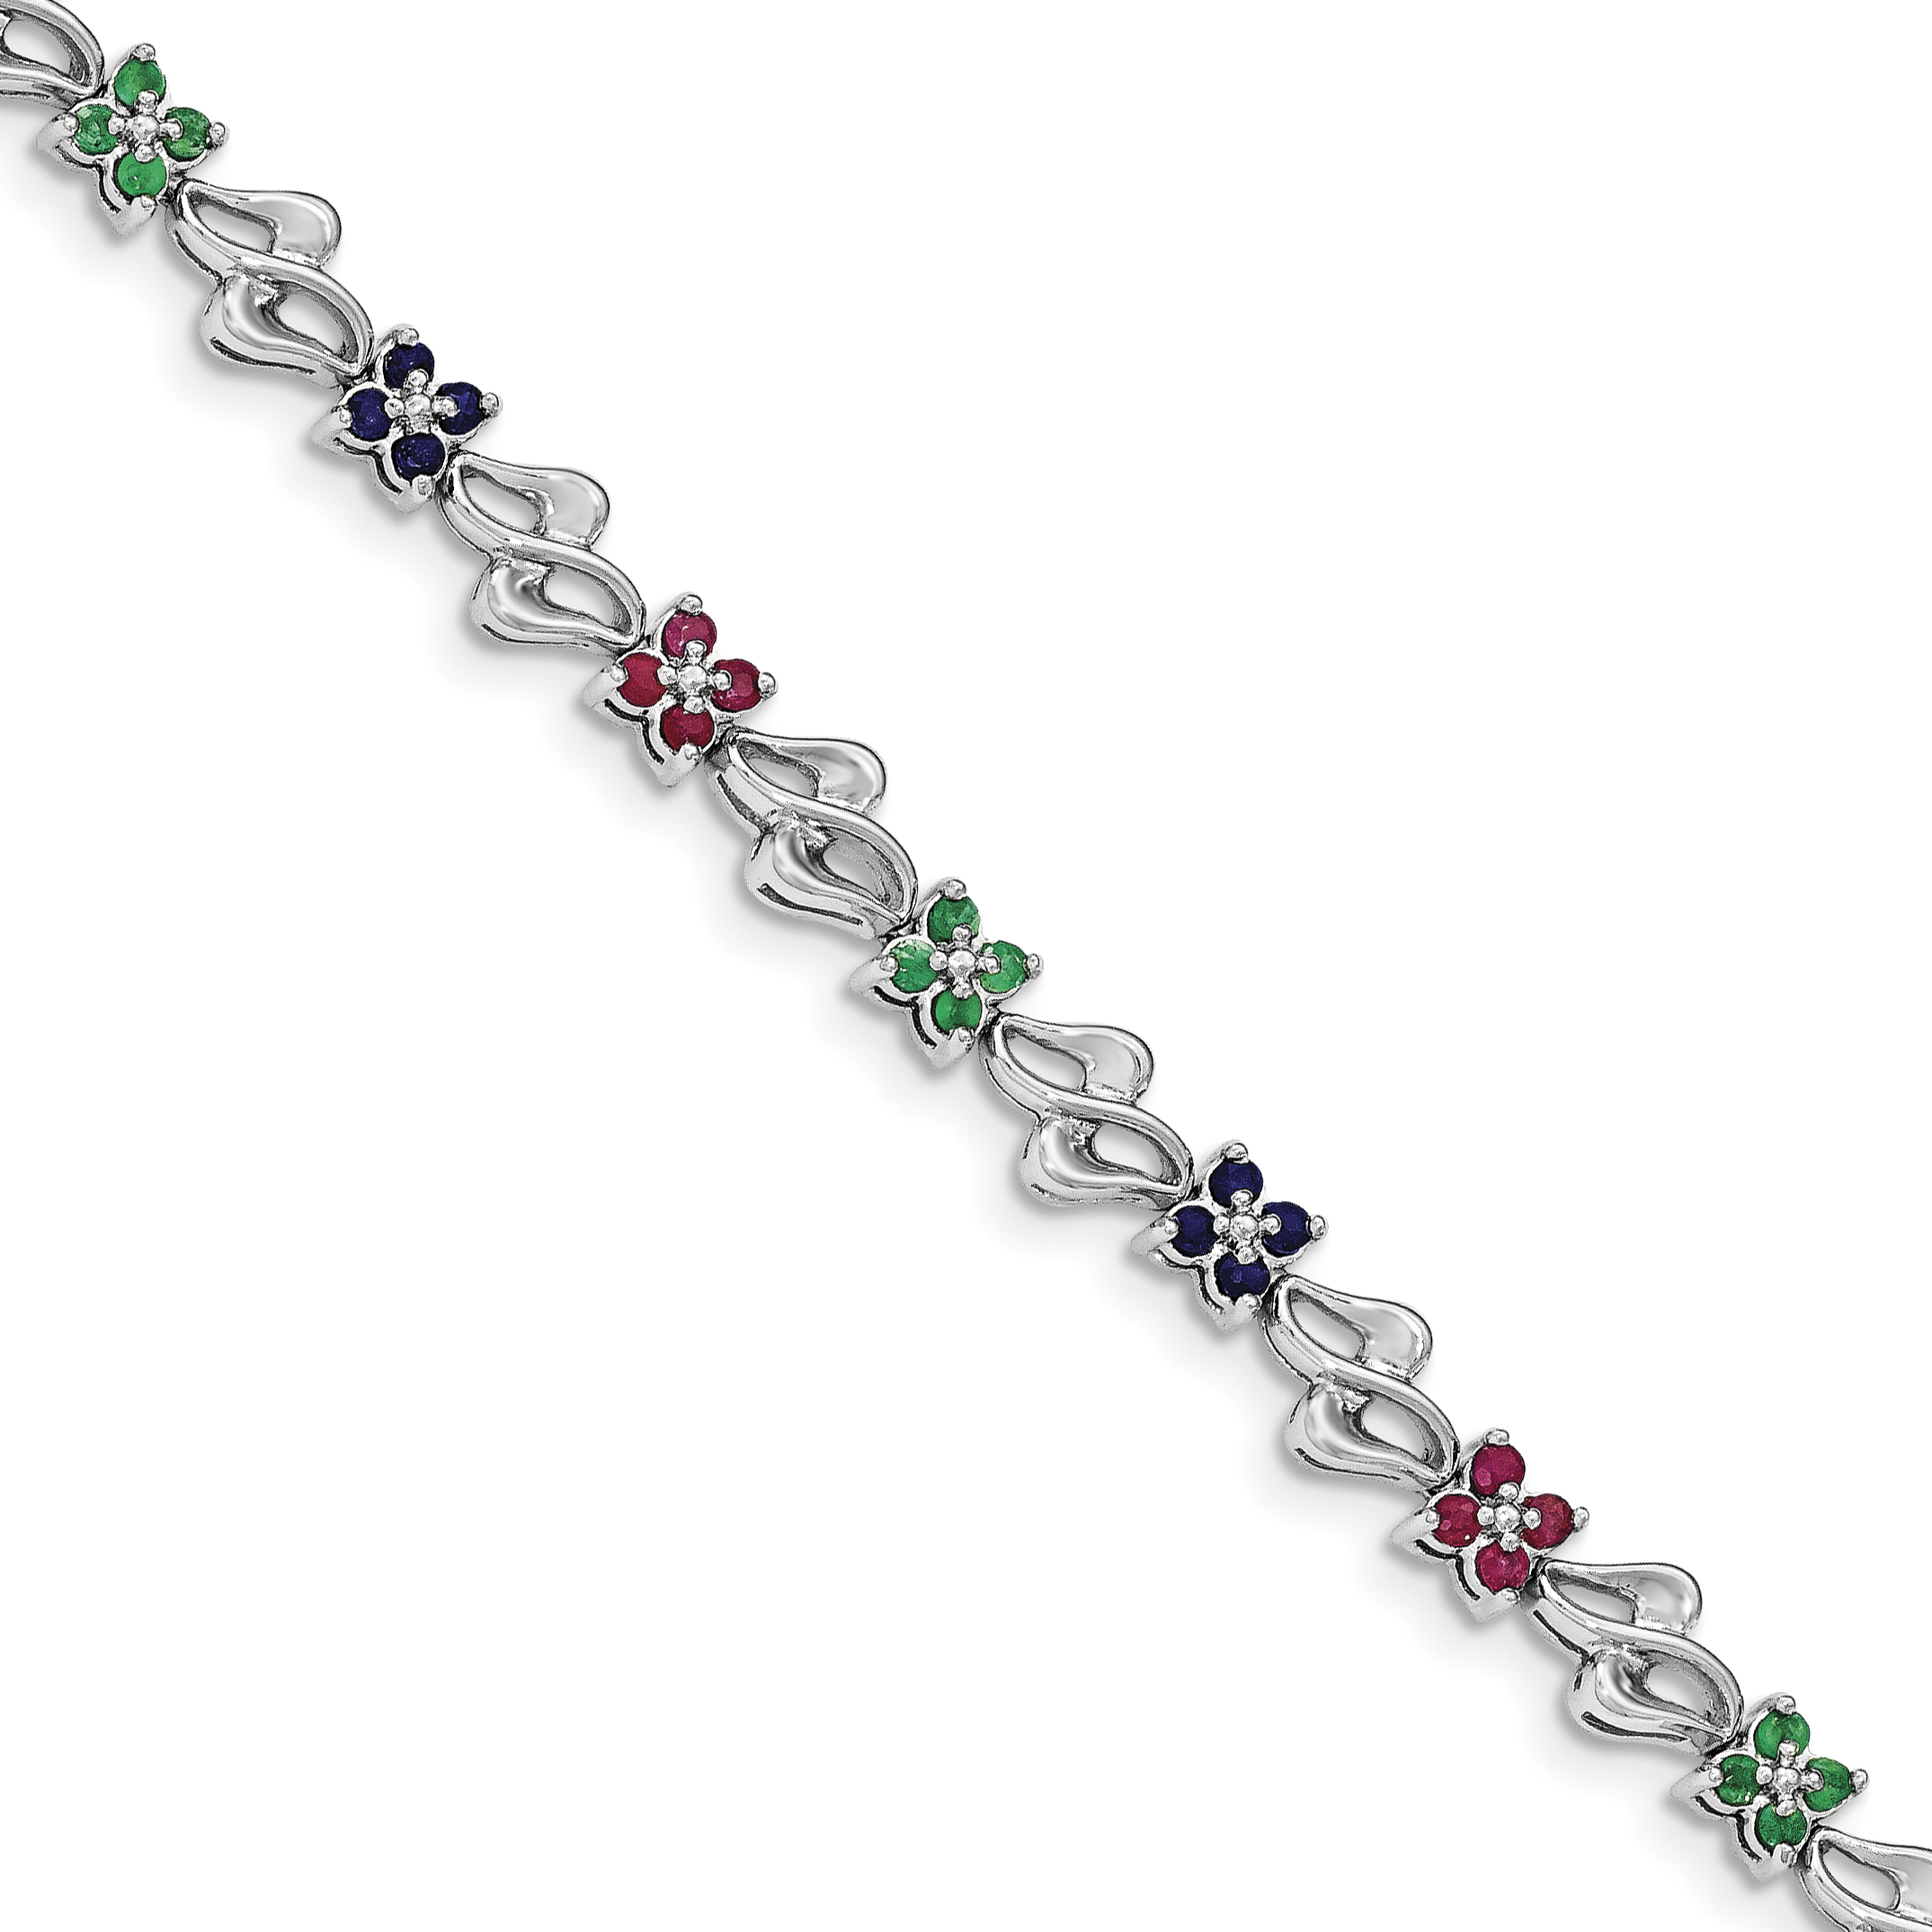 Sterling Silver Rhodium-plated & Sapphire, Ruby , Emerald Bracelet QX940M by Core Silver